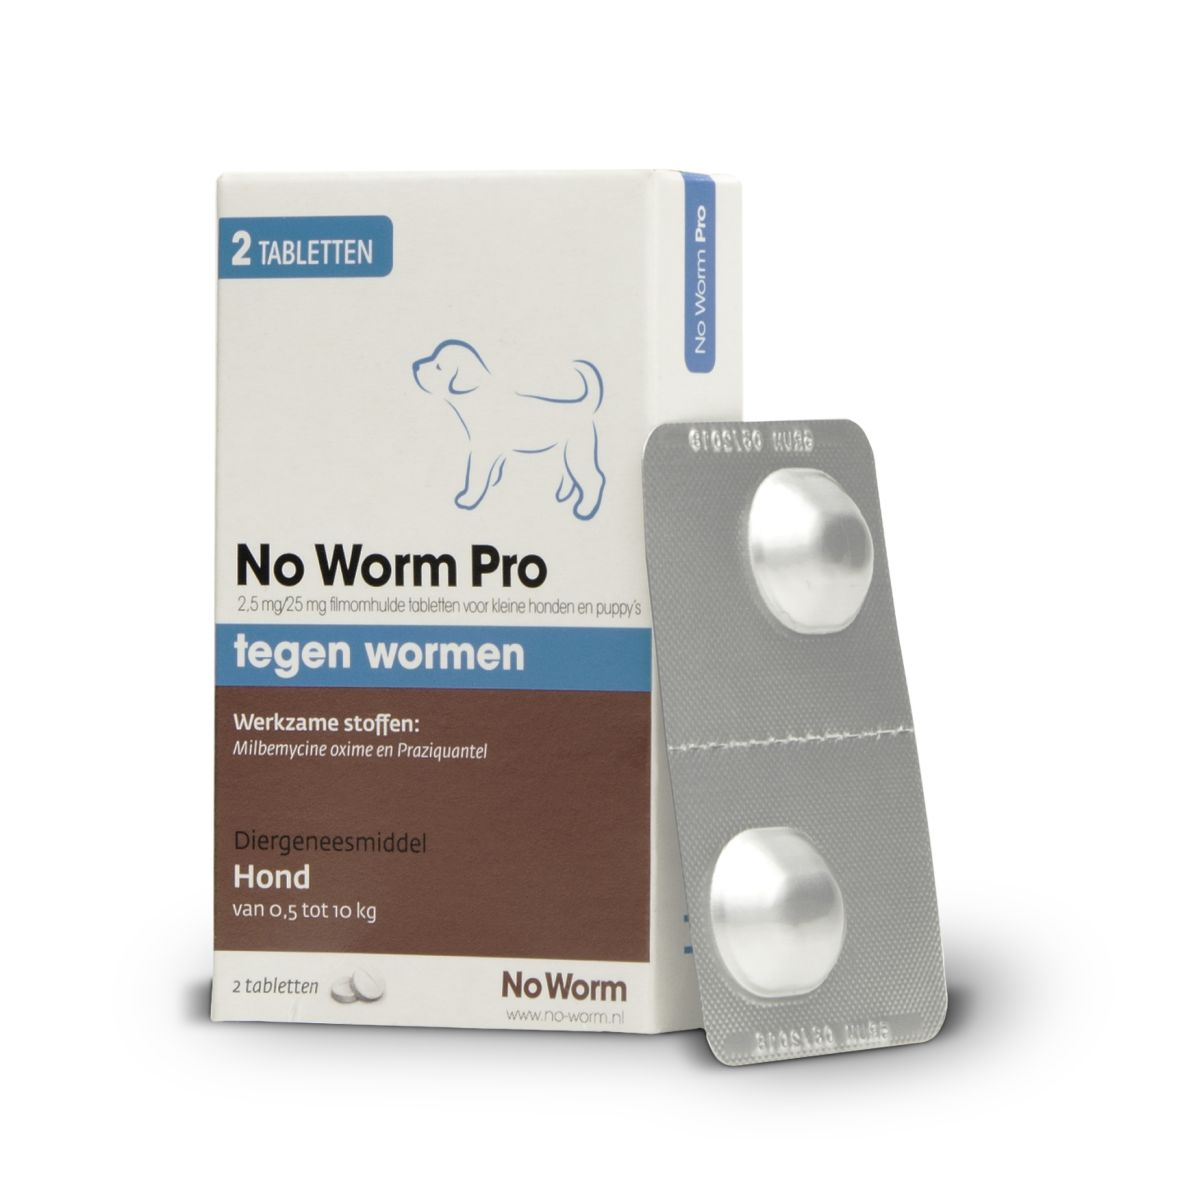 No worm pro wit/bruin 2 tabl